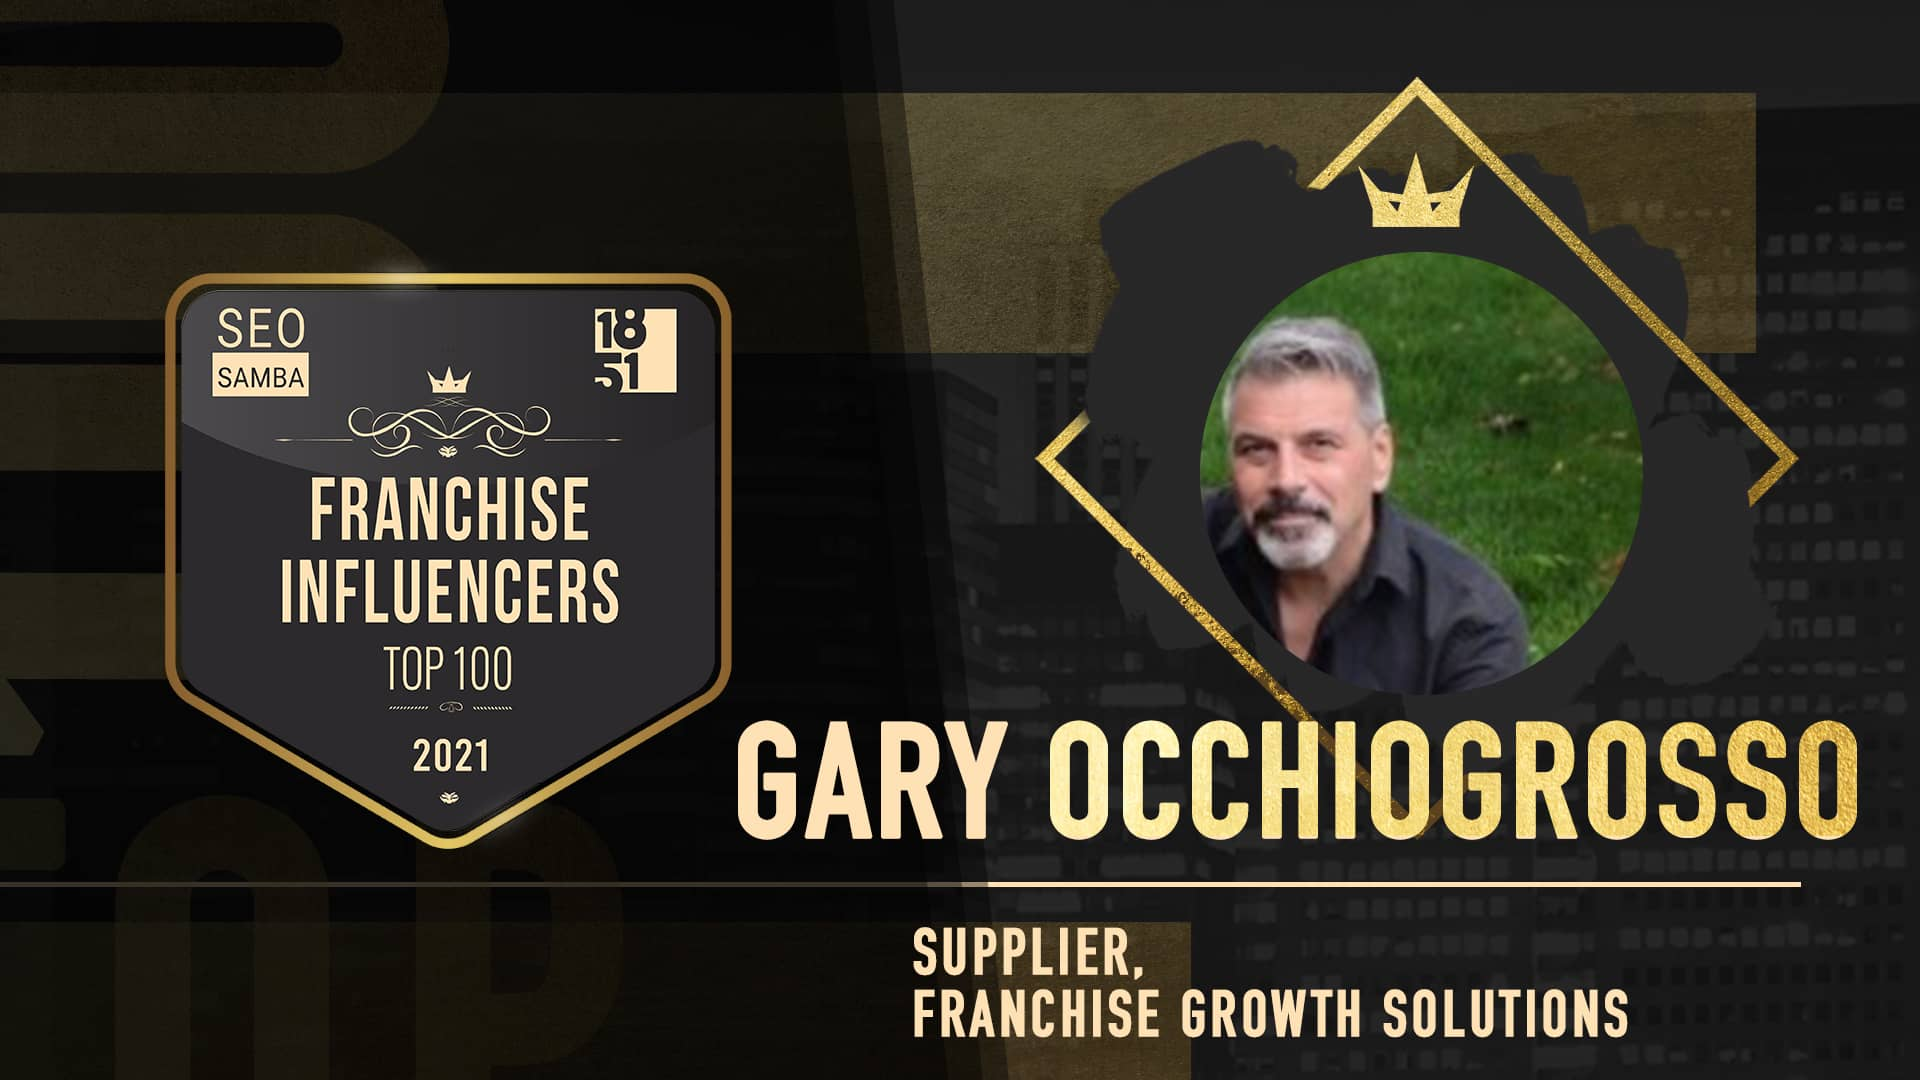 gary-occhiogrosso-franchise-growth-solutions